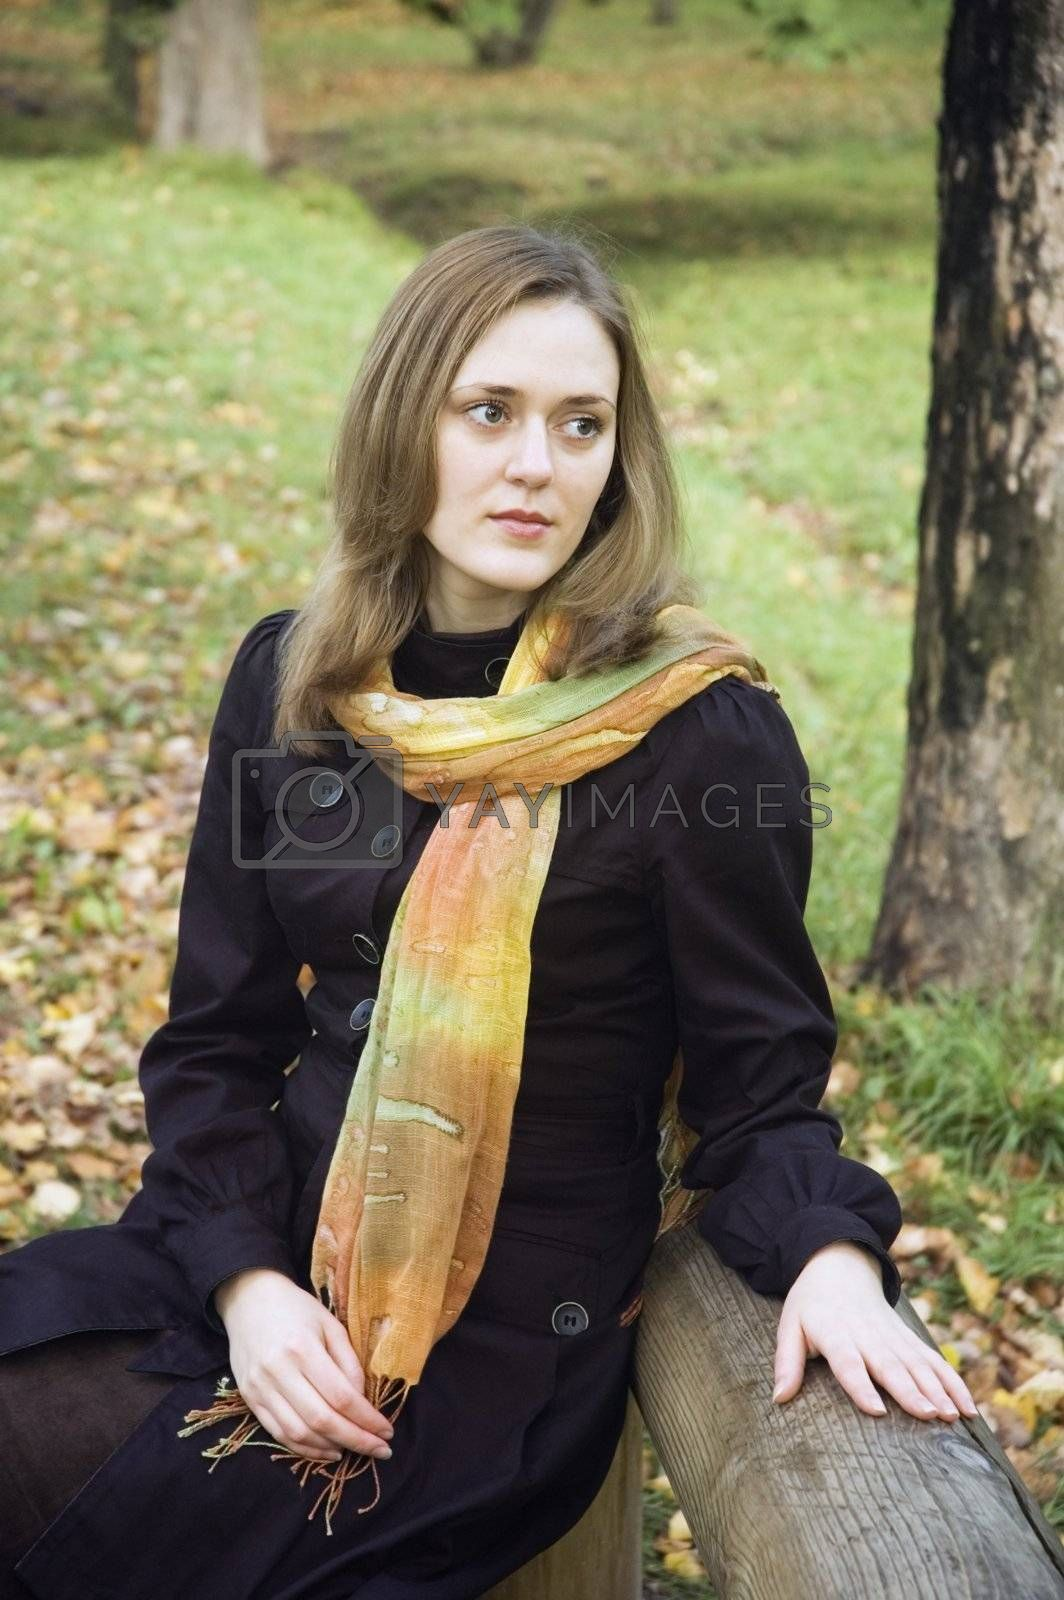 The young girl sits on a bench in park